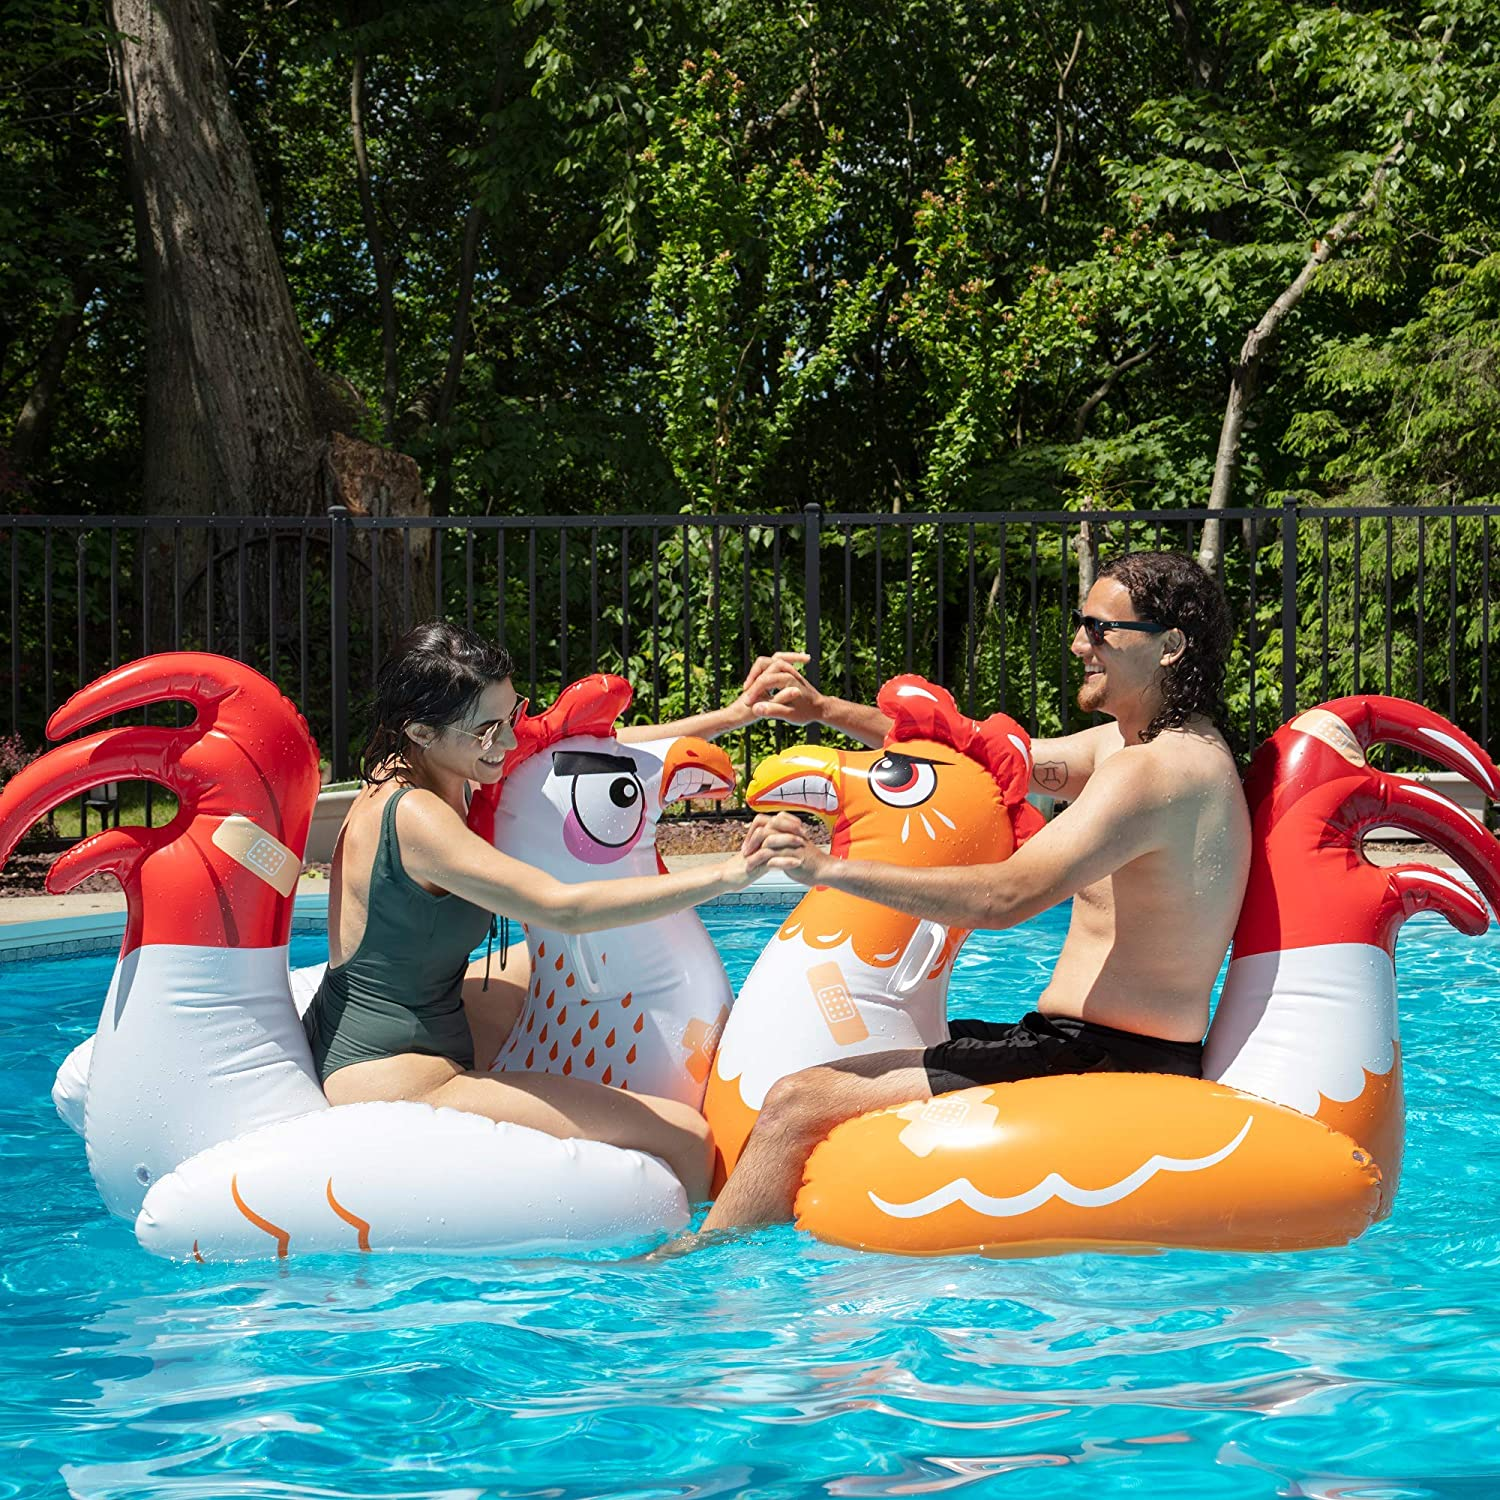 Chicken Fight Inflatable Pool Float Game Set - Includes 2 Giant Battle Ride-Ons - Flip Your Friends to Win! - for Kids and Adults